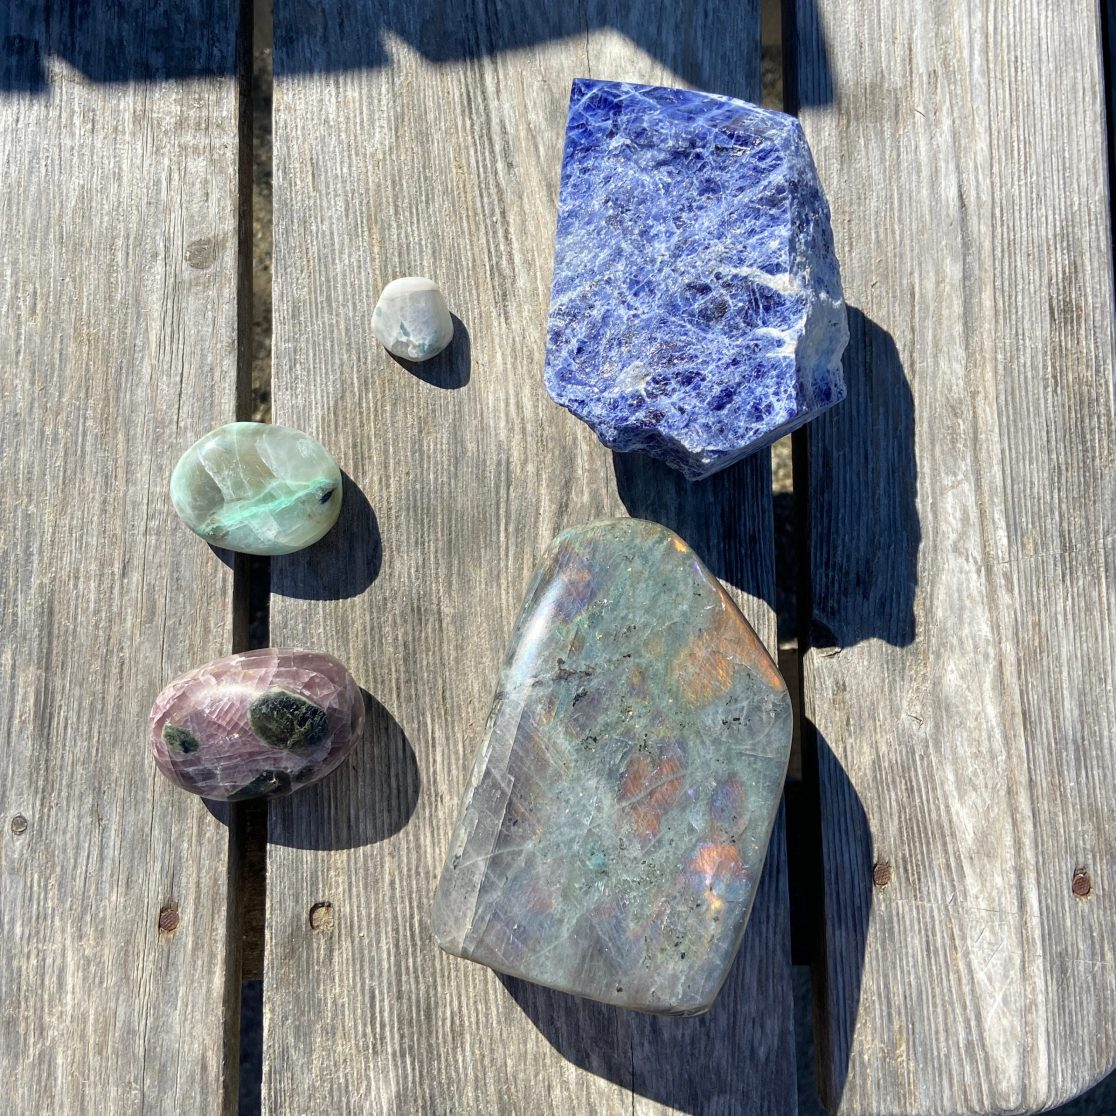 Gemstones from a rock shop